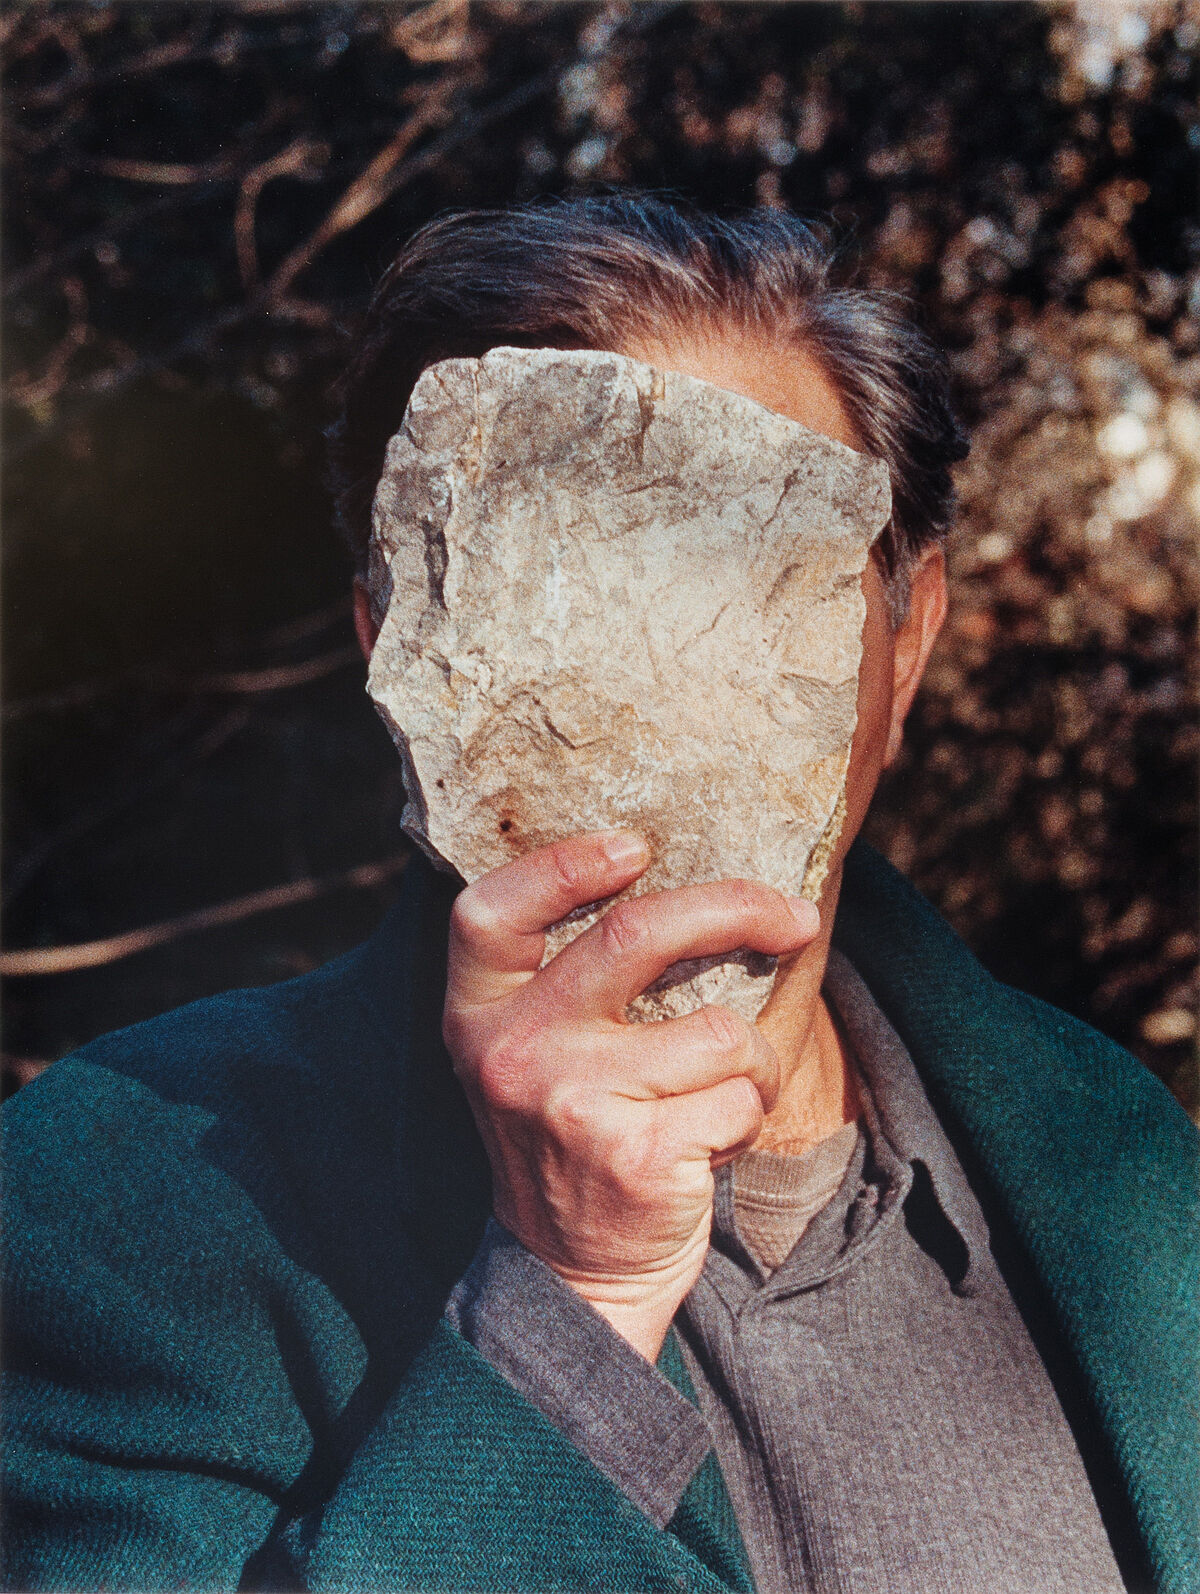 A man holding a stone in front of his face